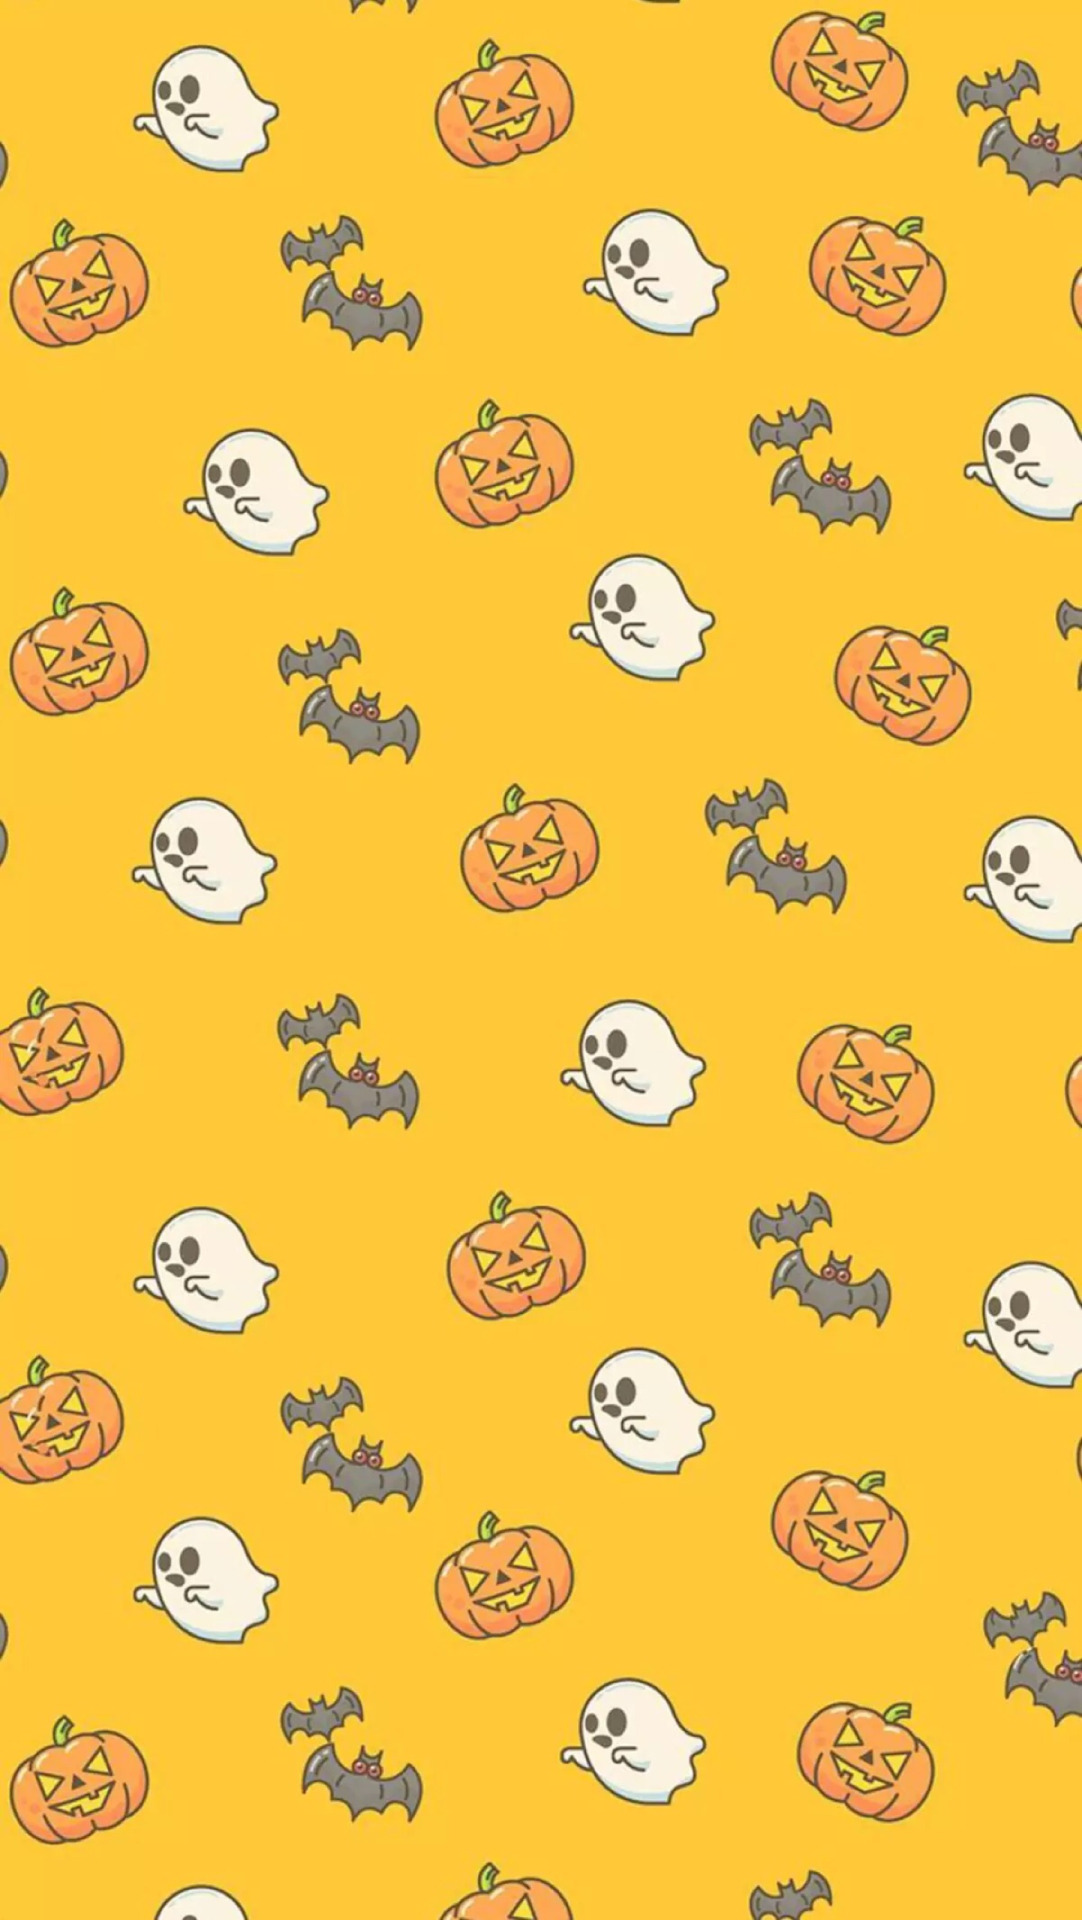 halloween illustration vector wallpaper pattern repetition set design collection sketch texture retro